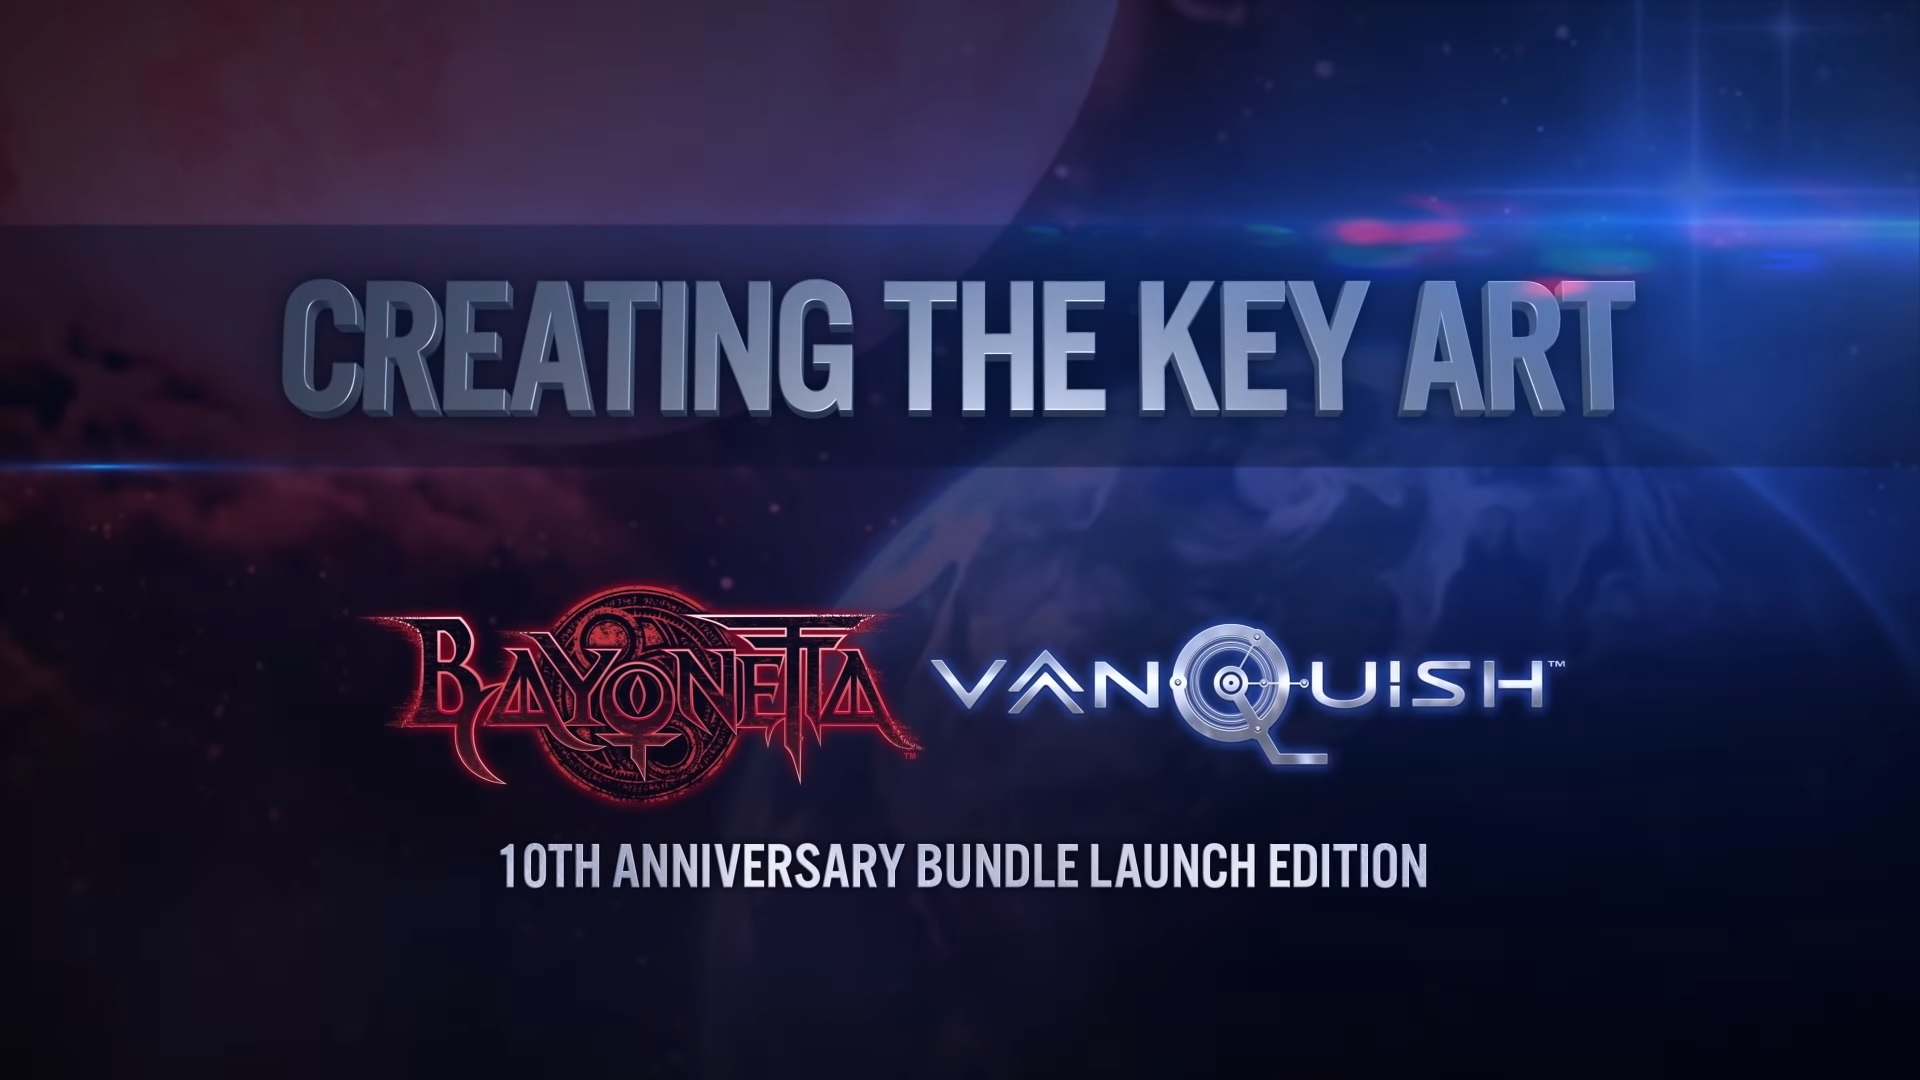 Bayonetta & Vanquish Behind-the-Scenes Video Released